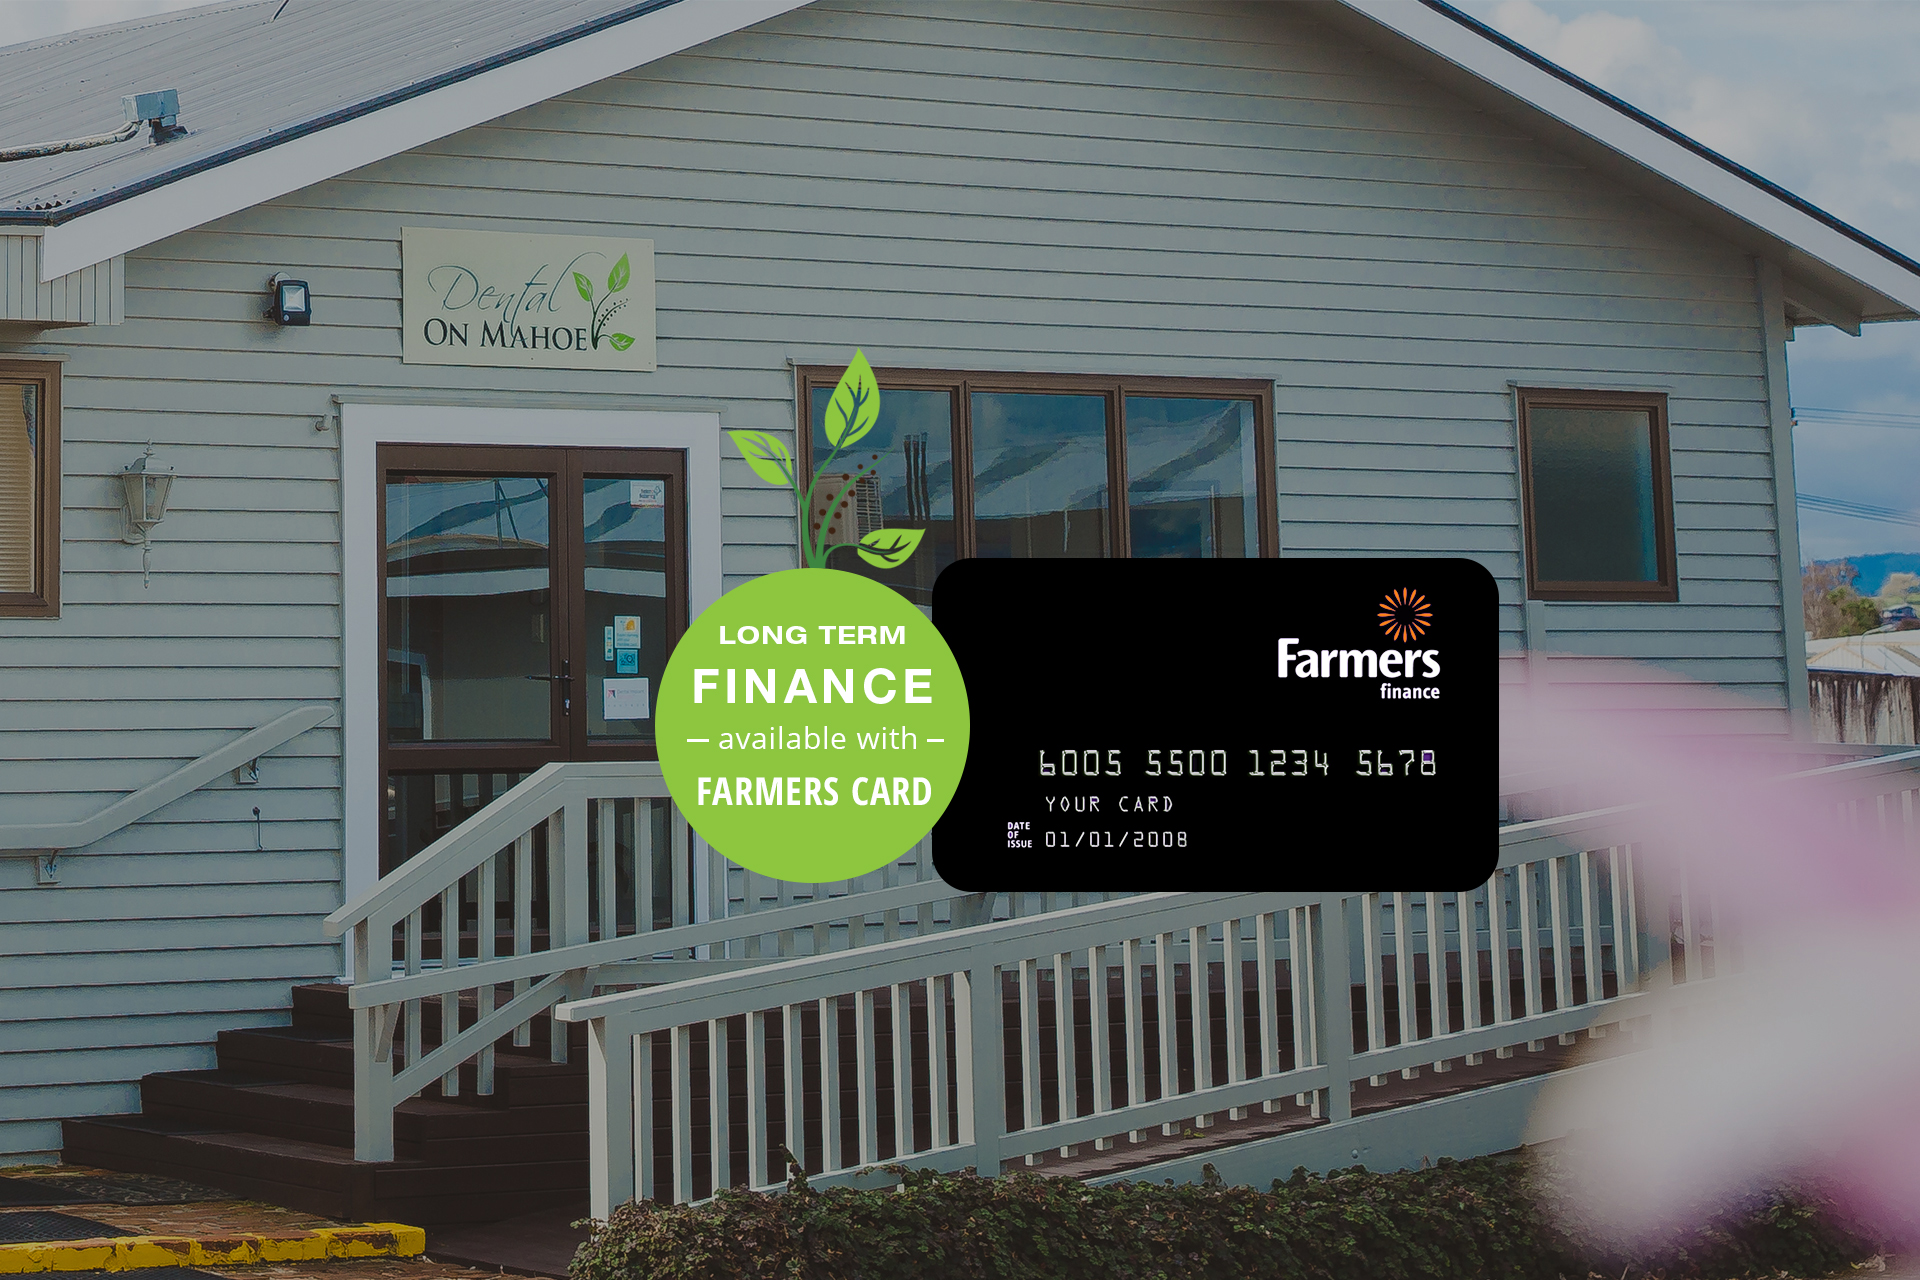 Long Term Finance Farmers Card | Dental On Mahoe Te Awamutu